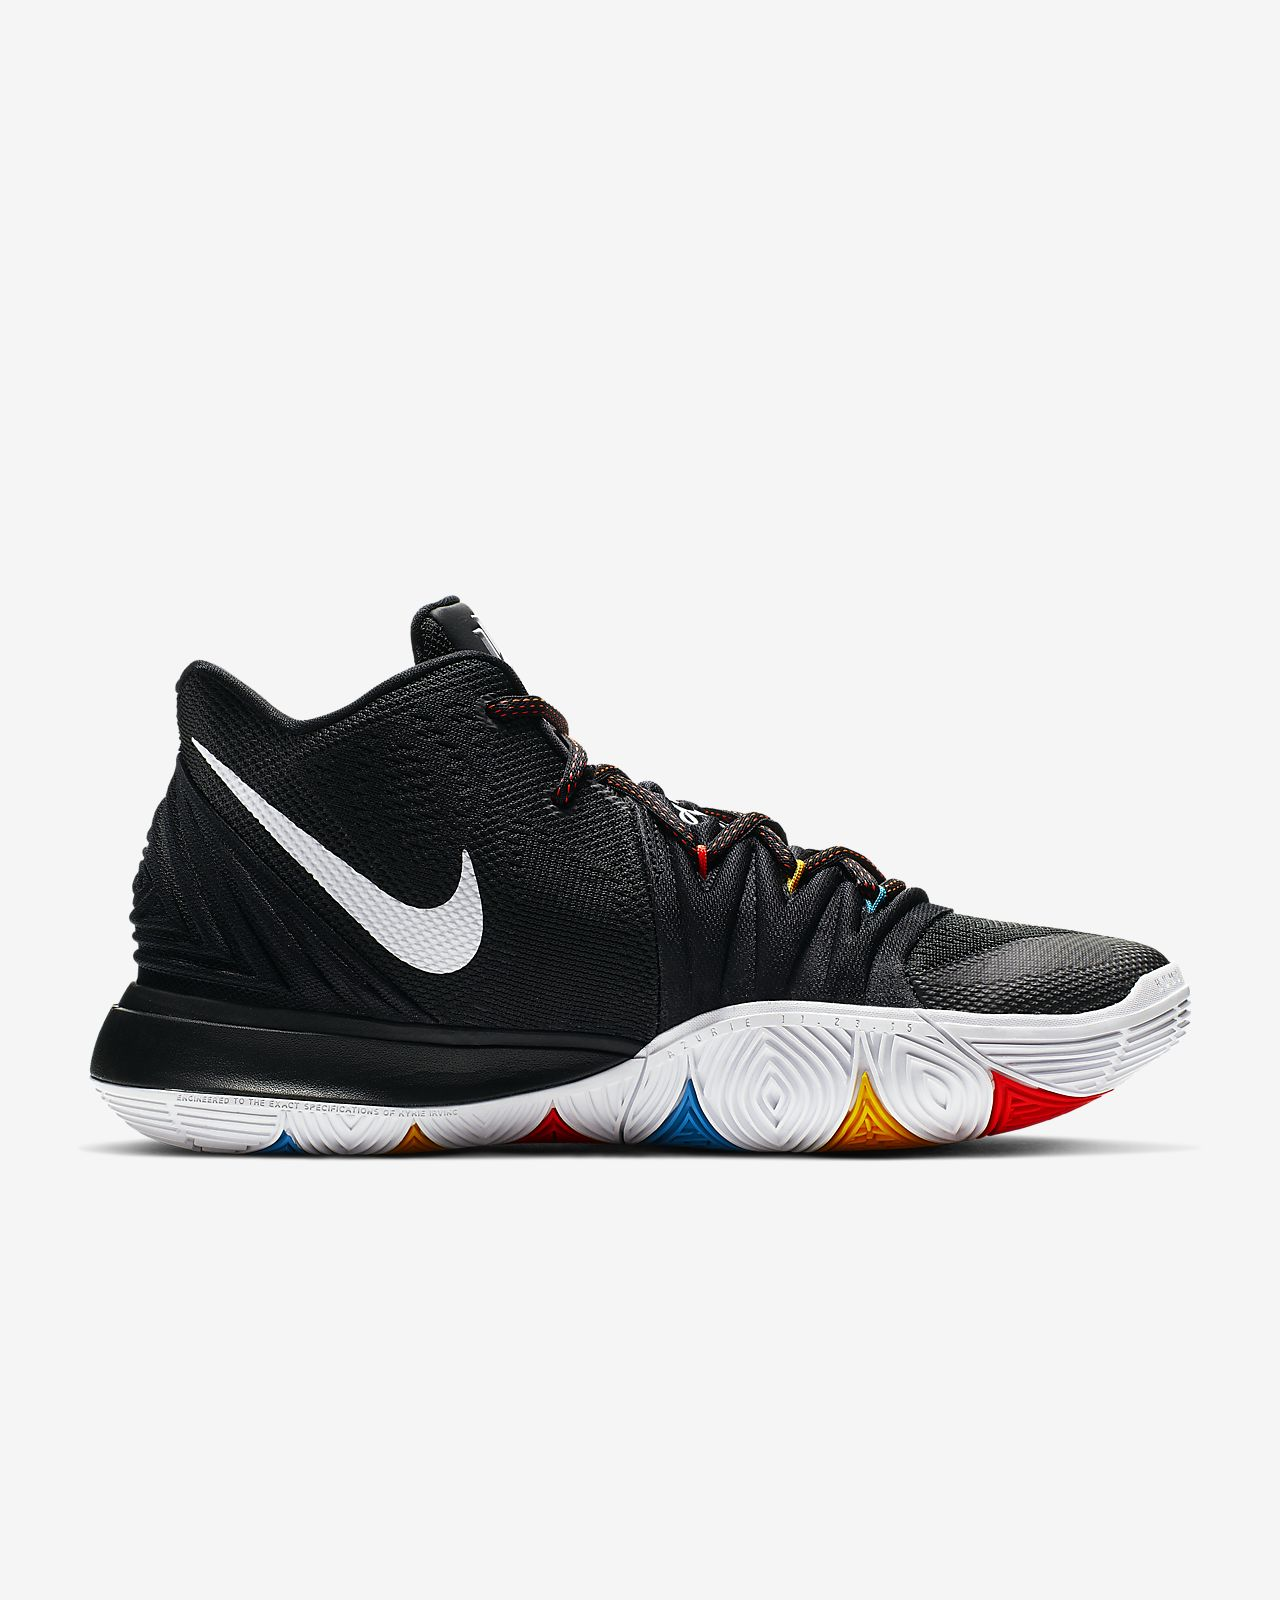 buy online a3c94 85105 Low Resolution Sko Kyrie 5 Sko Kyrie 5